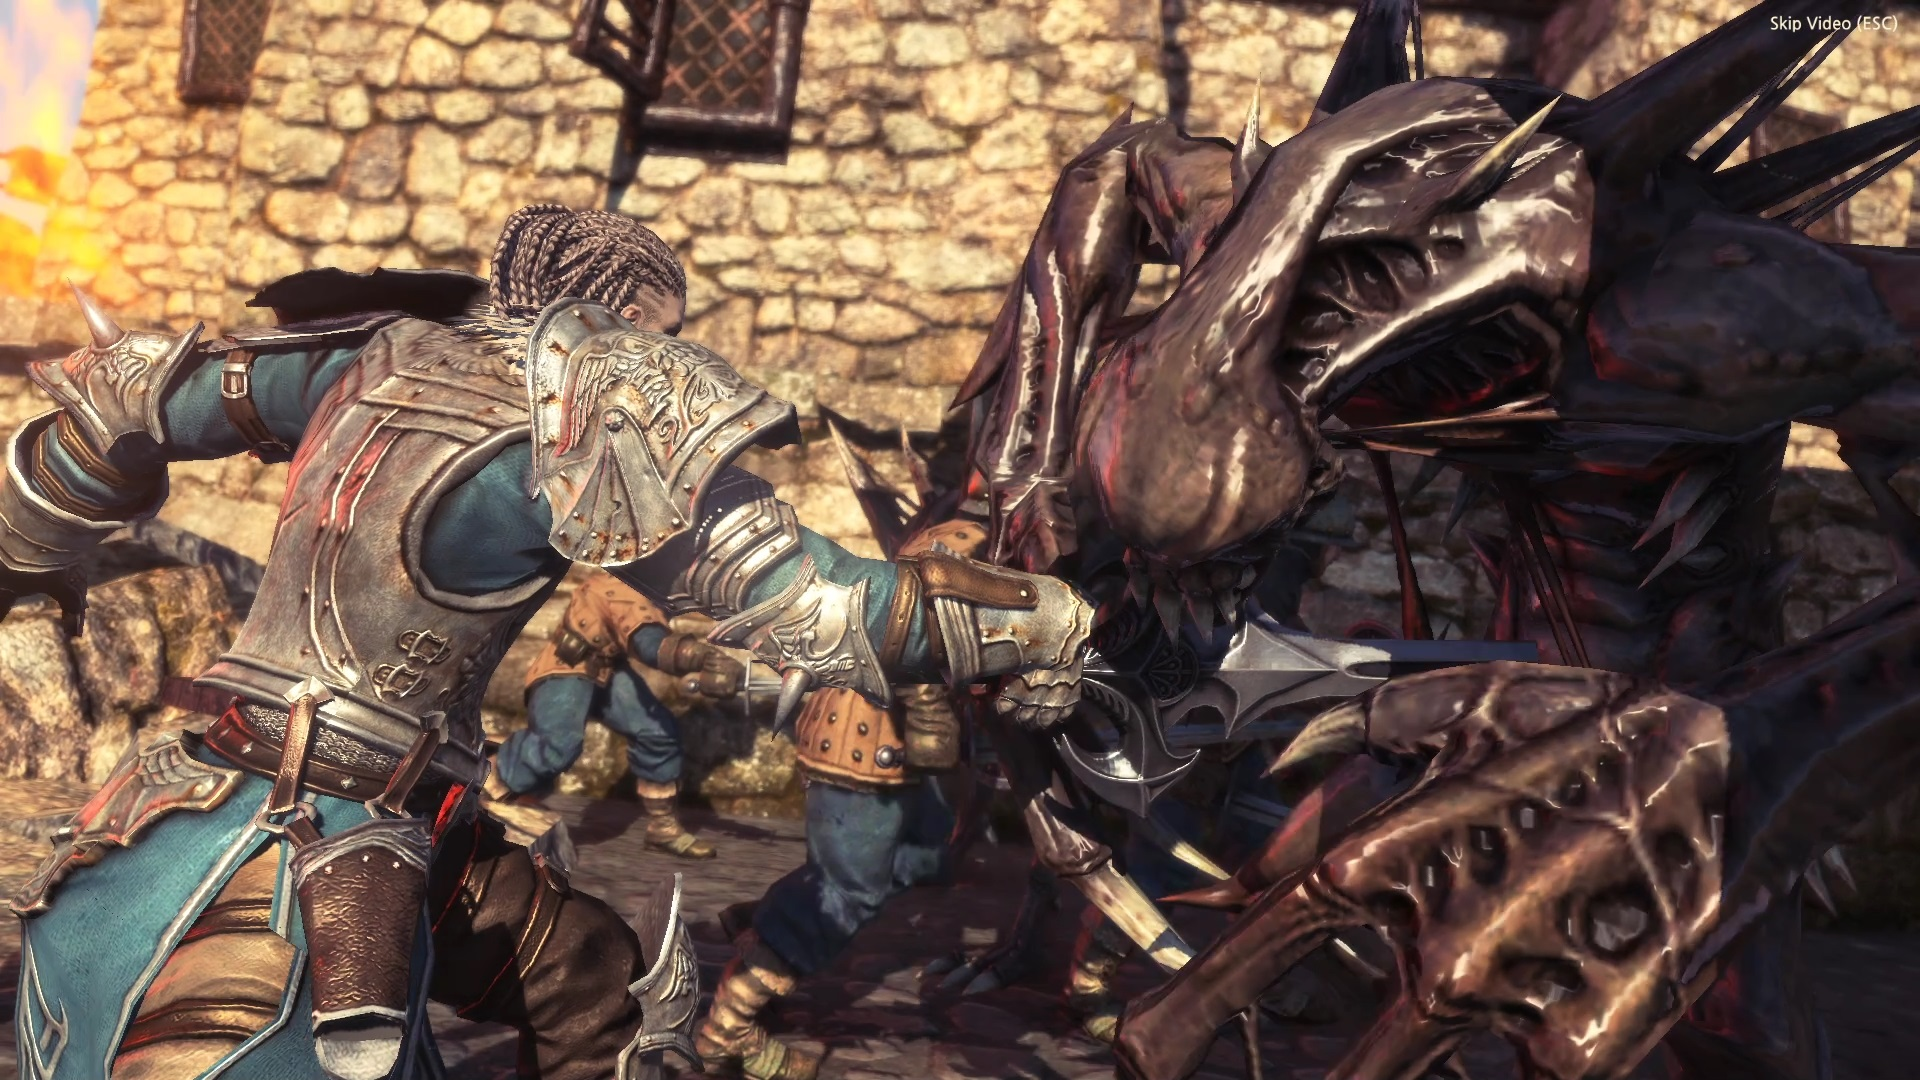 Preview: Kingdom Under Fire 2 blends RTS and action well, but MMO not so much 4